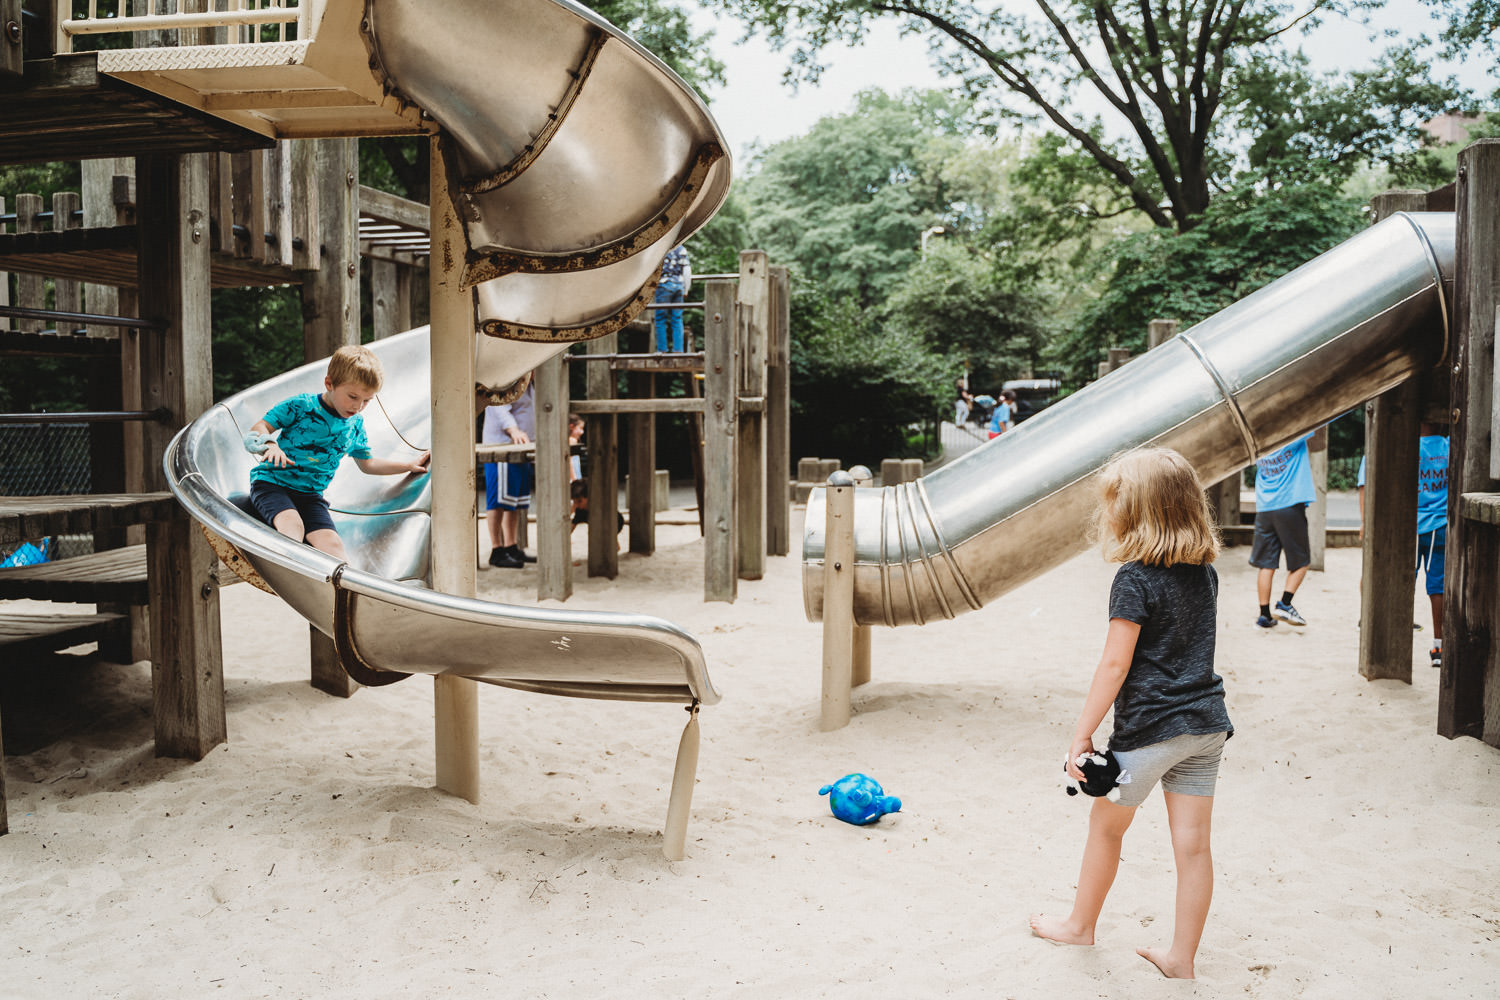 Two children play at the playground in Central Park.